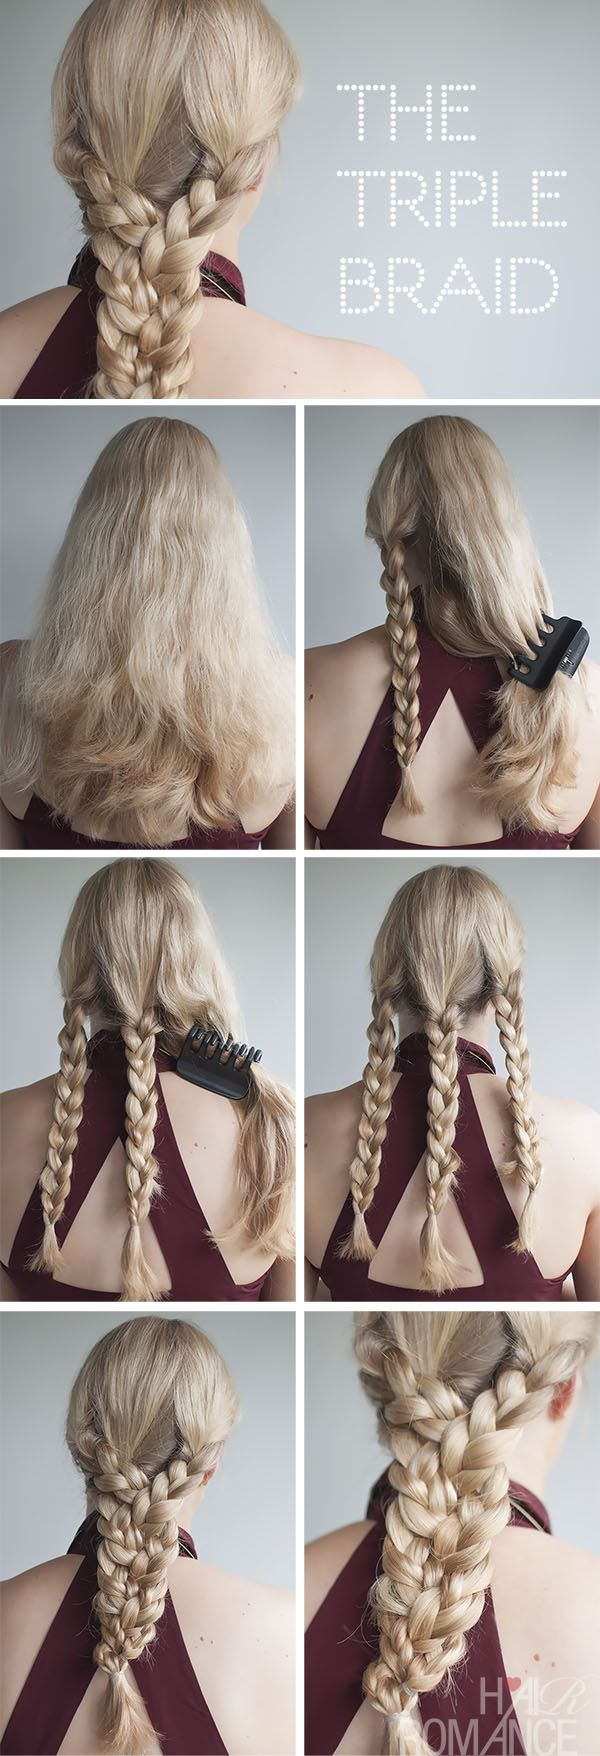 I tried this it looks really good and its really easy easy way